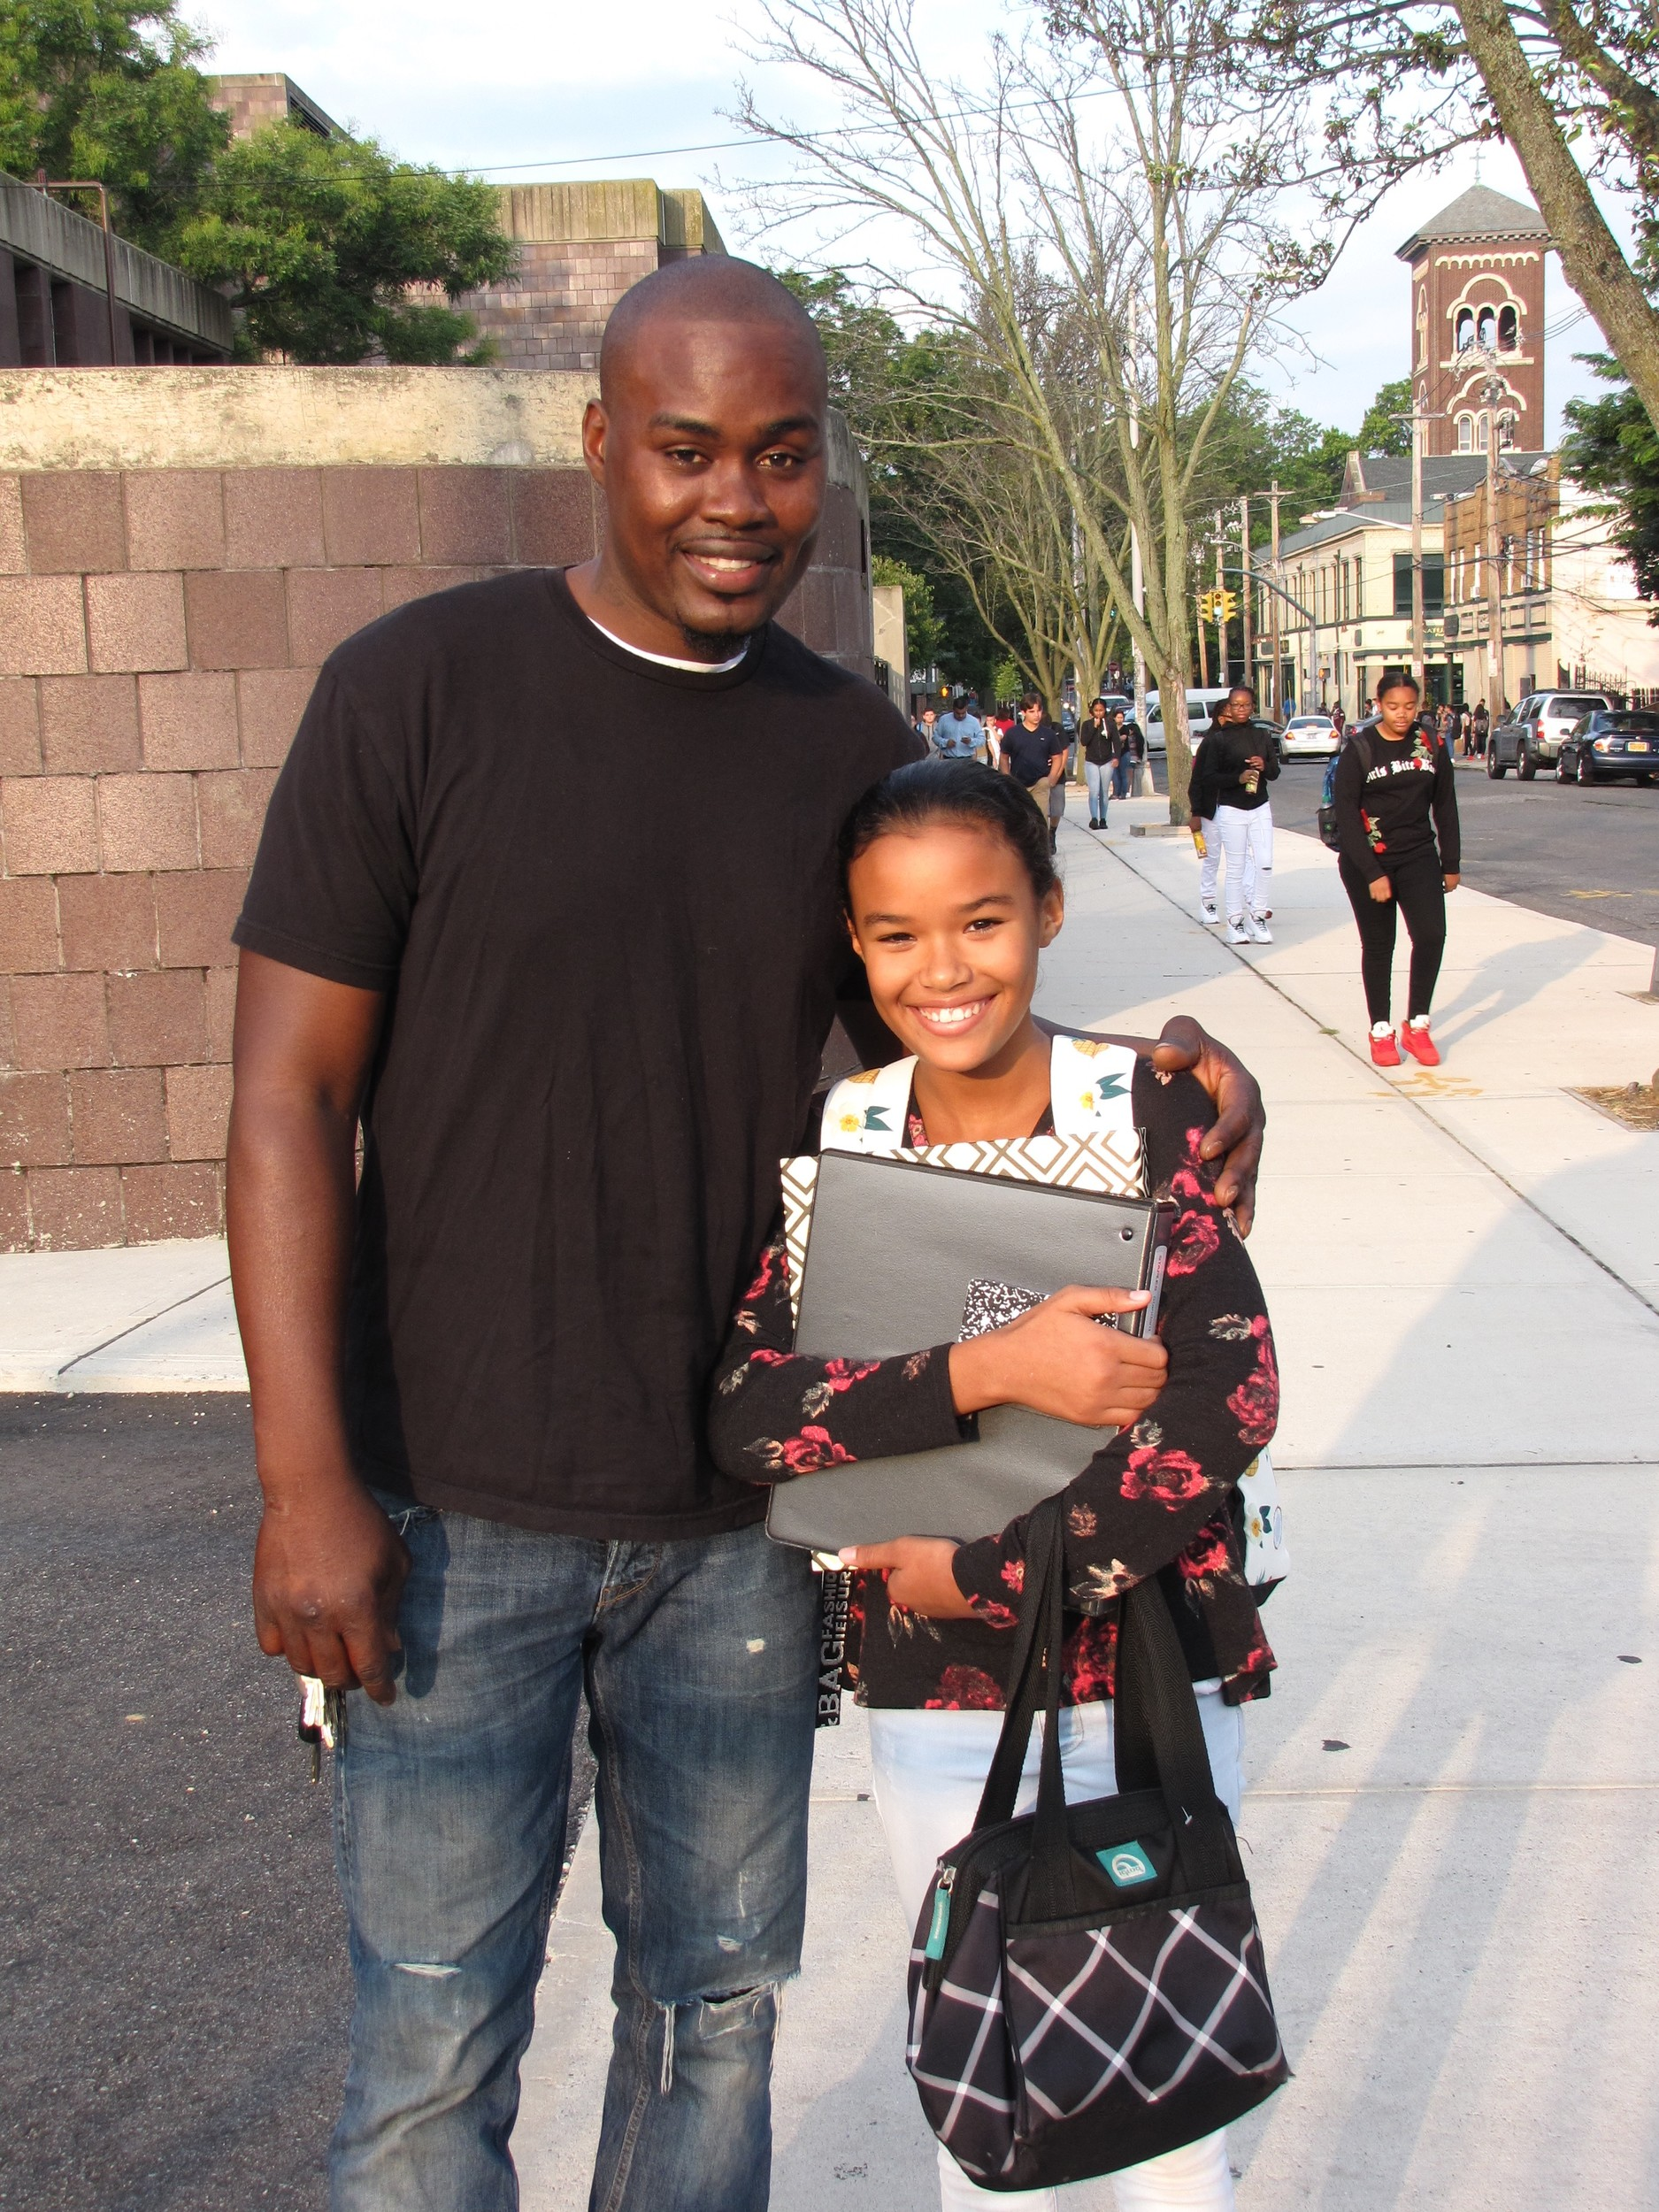 Oneal Willocks and his daughter Isabel Willocks, seventh grader at J.W. Dodd Middle School were all smiles.